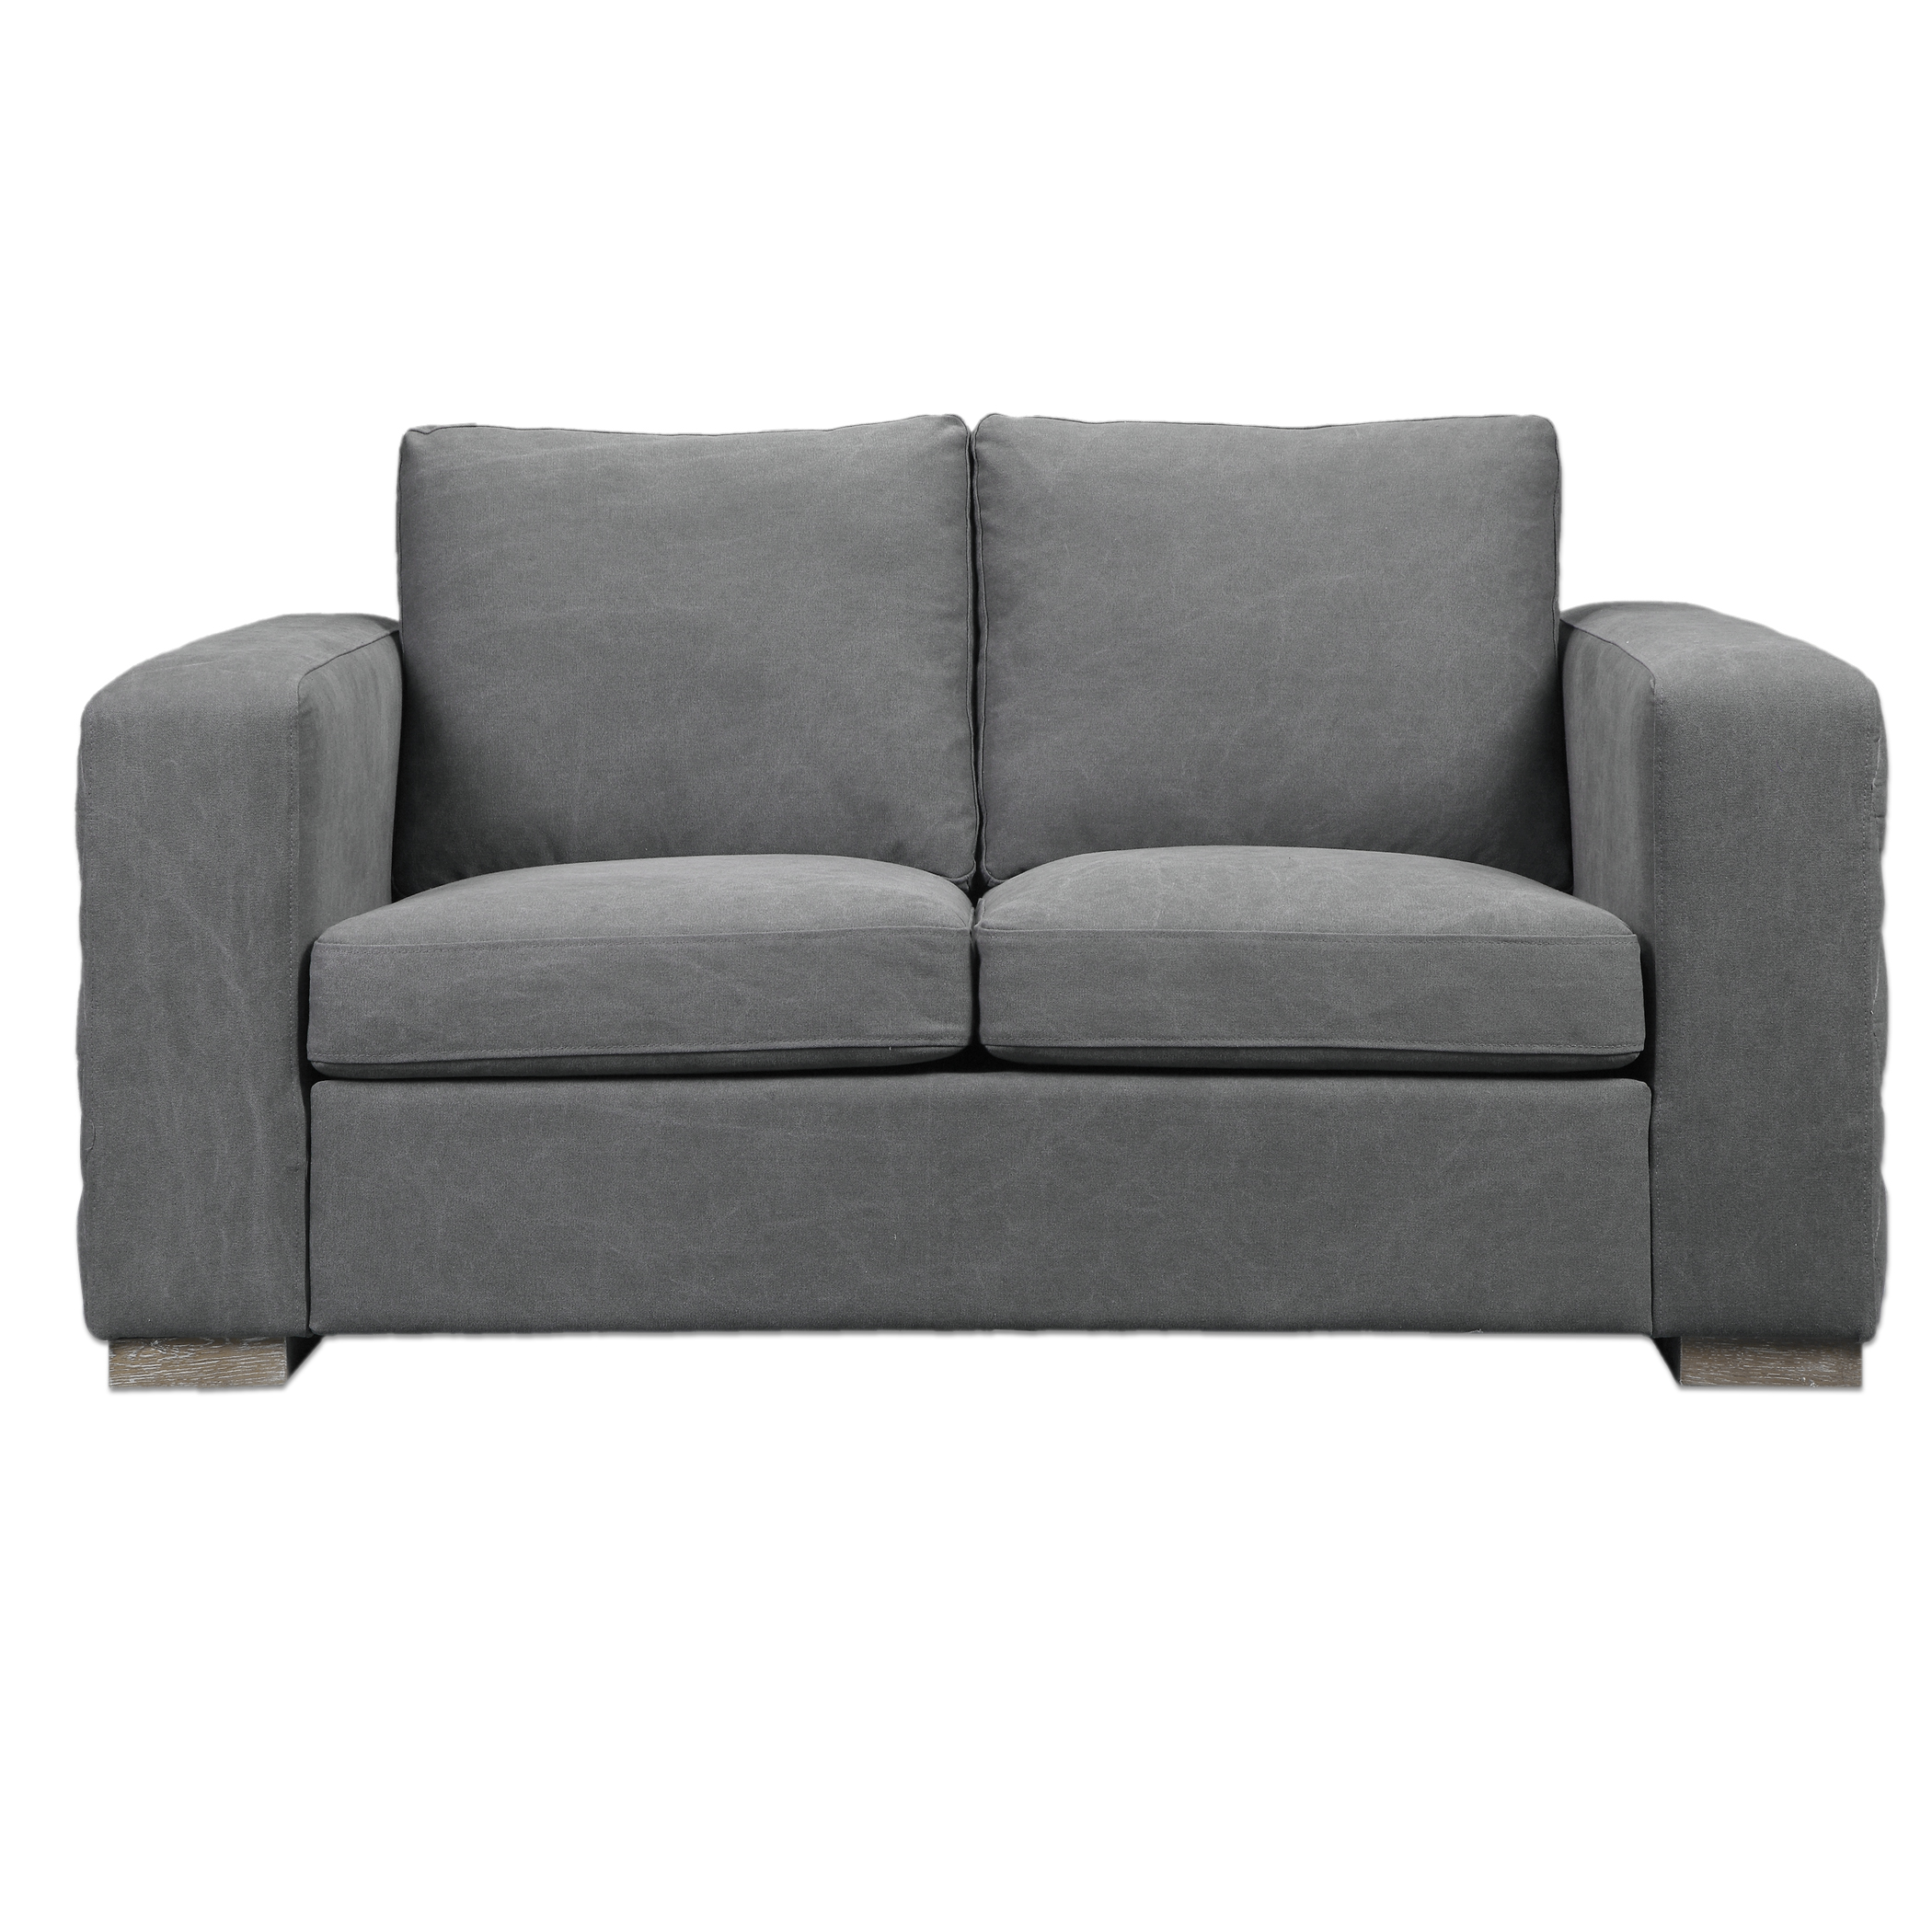 Uttermost Accent Furniture Inari Stonewashed Gray Loveseat - Item Number: 23259